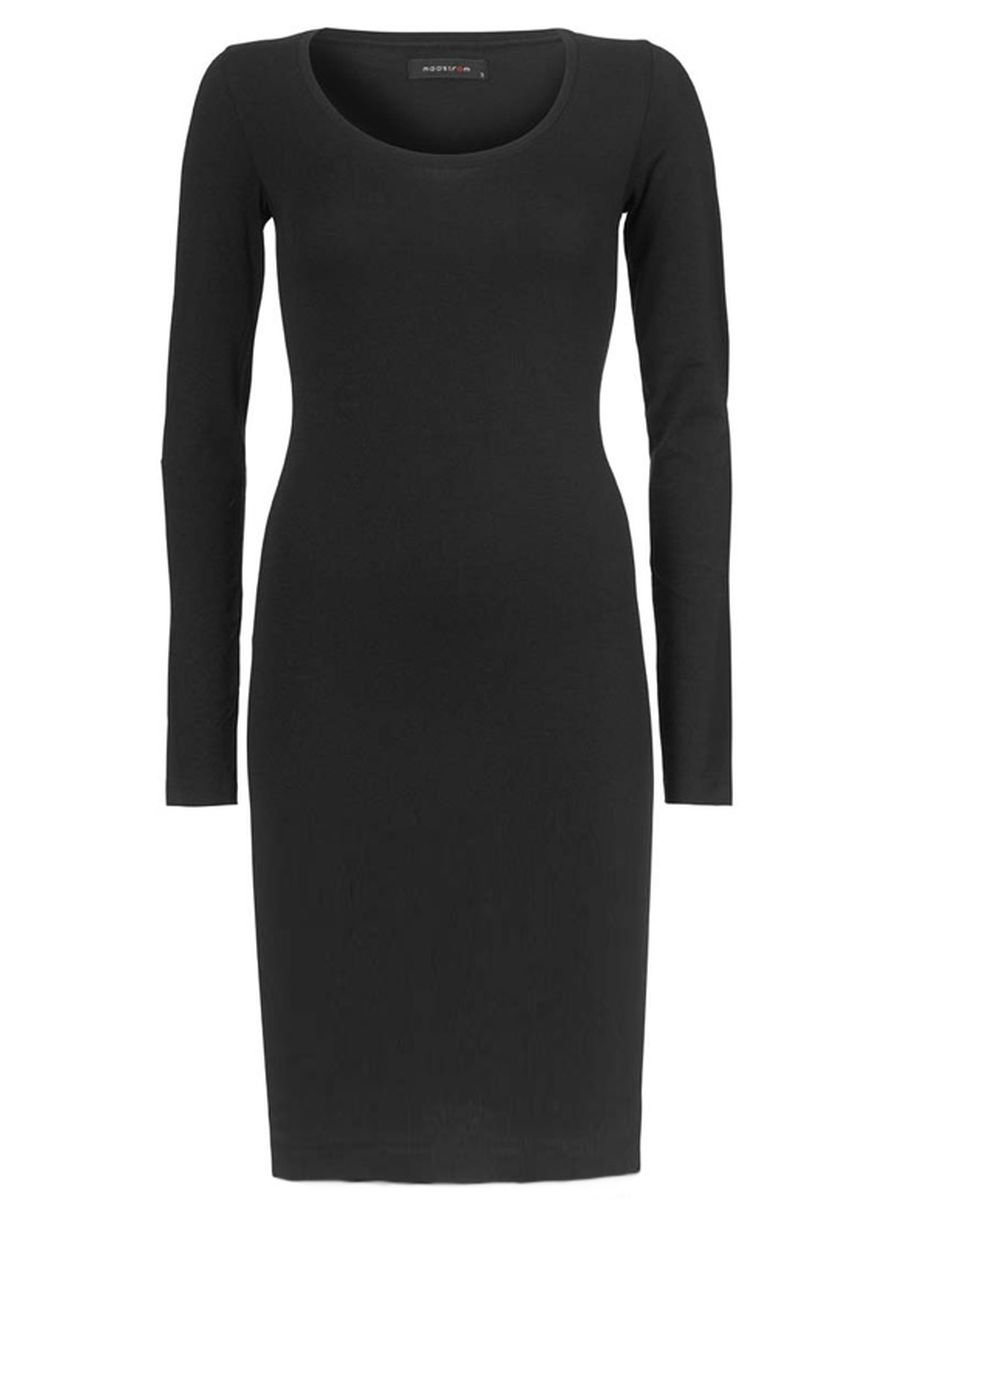 Turbo Dress - Black